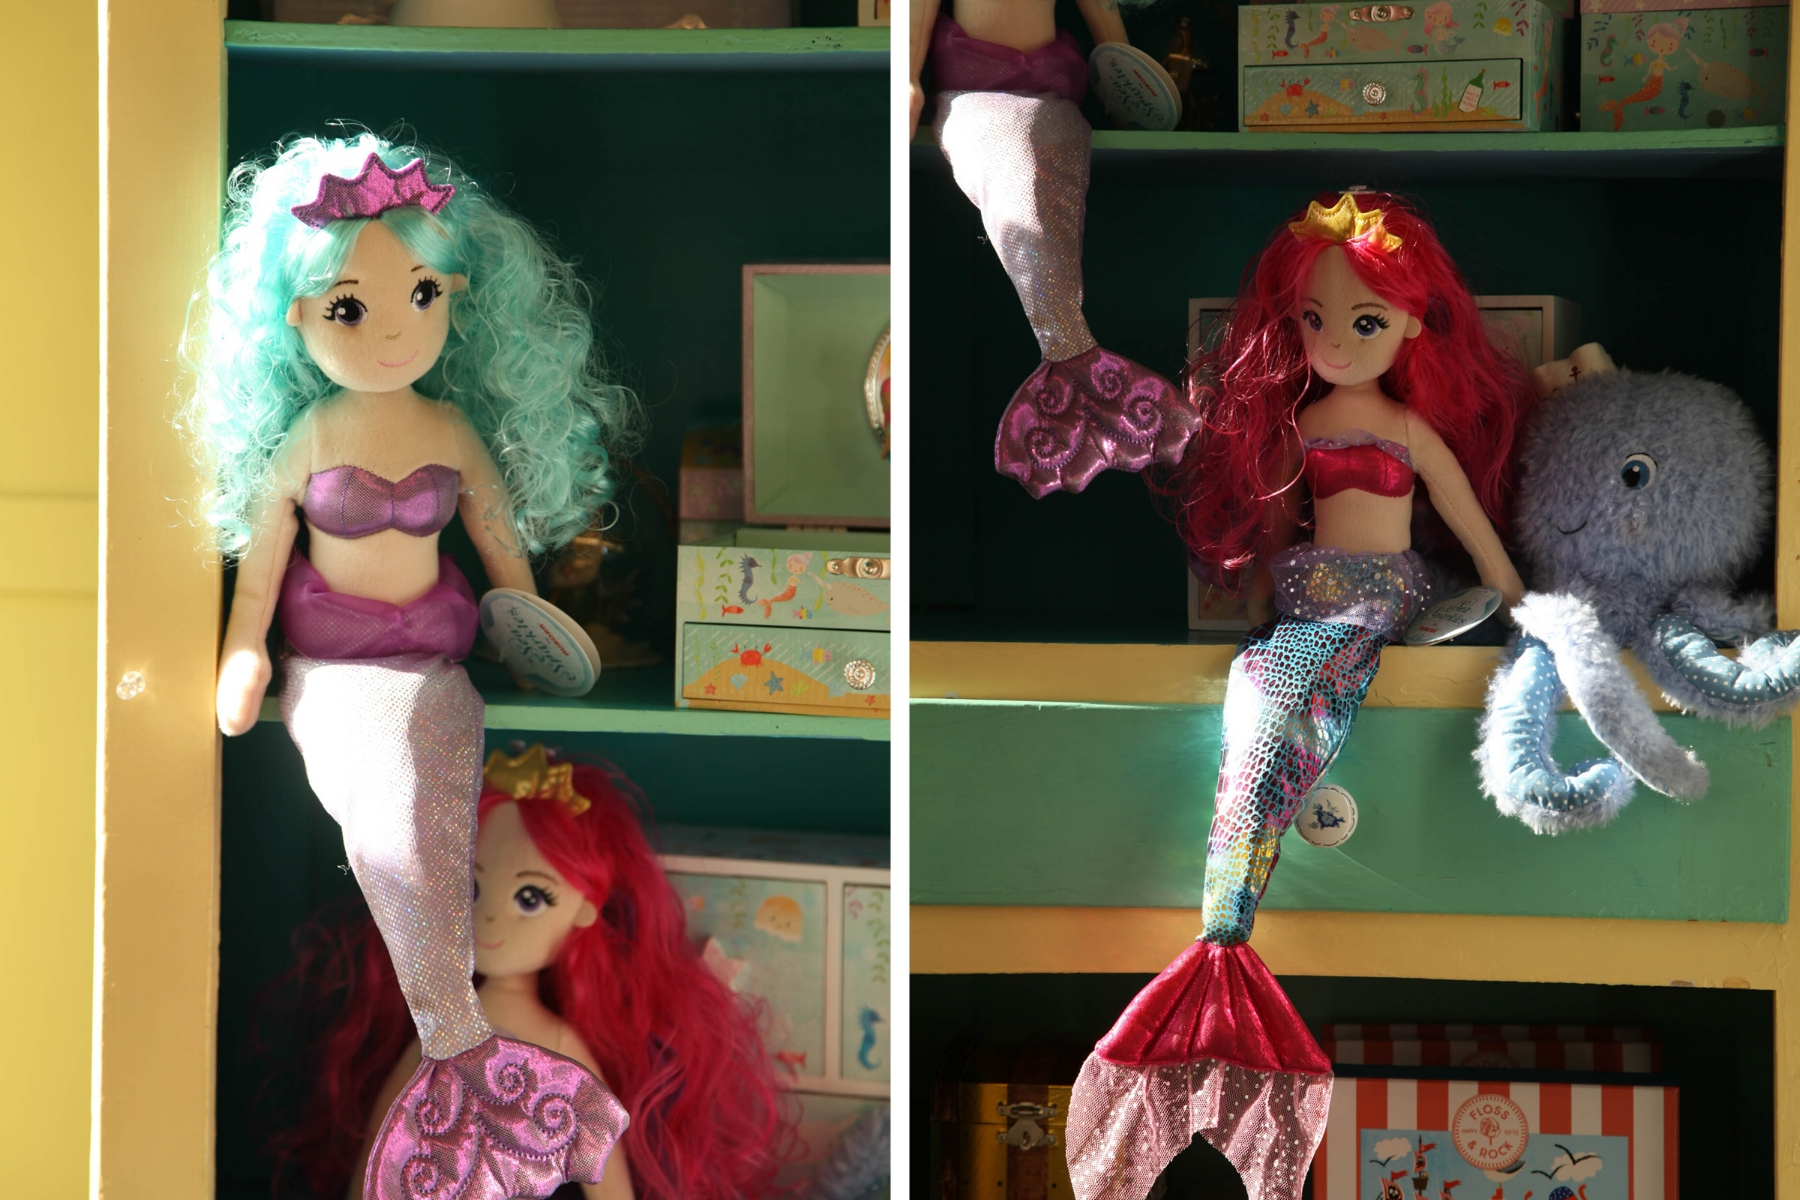 There are no Barbies at The Paper Mermaid and most of the dolls modestly wear bandeaus or seashells over their tops. (Photographs by Dana Smith)